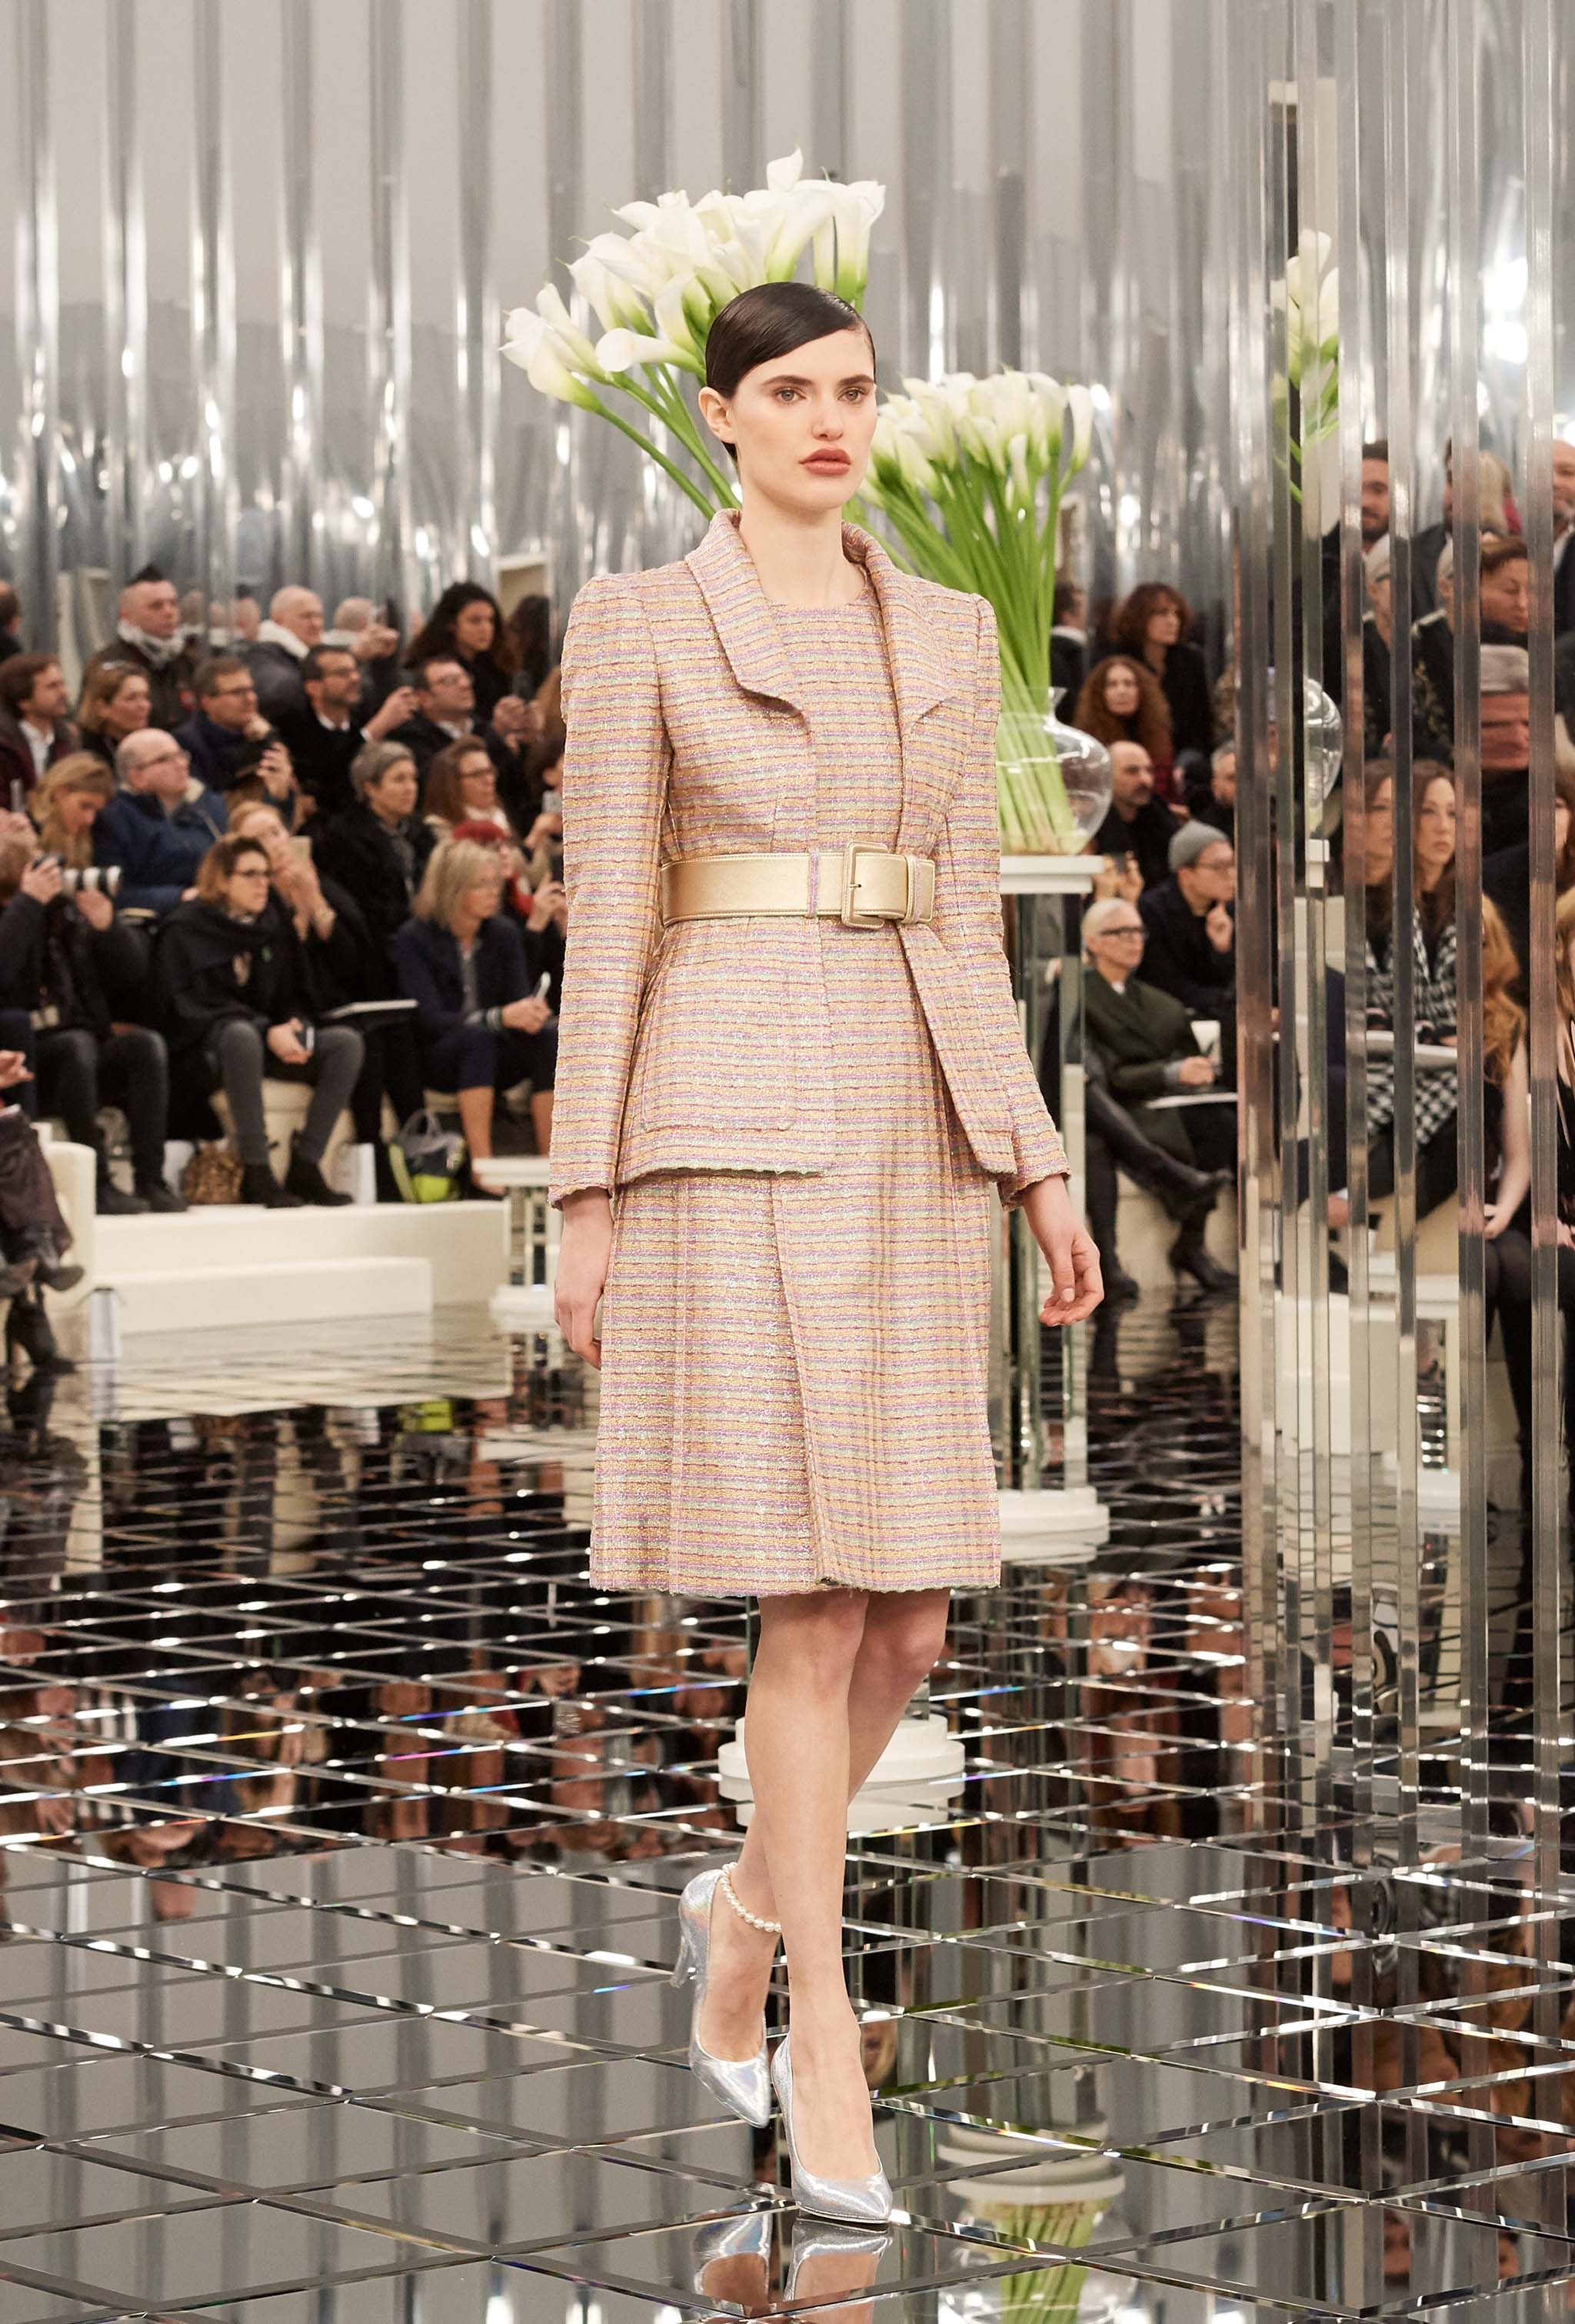 Chanel Haute Couture Spring Summer 2017 Runway Show